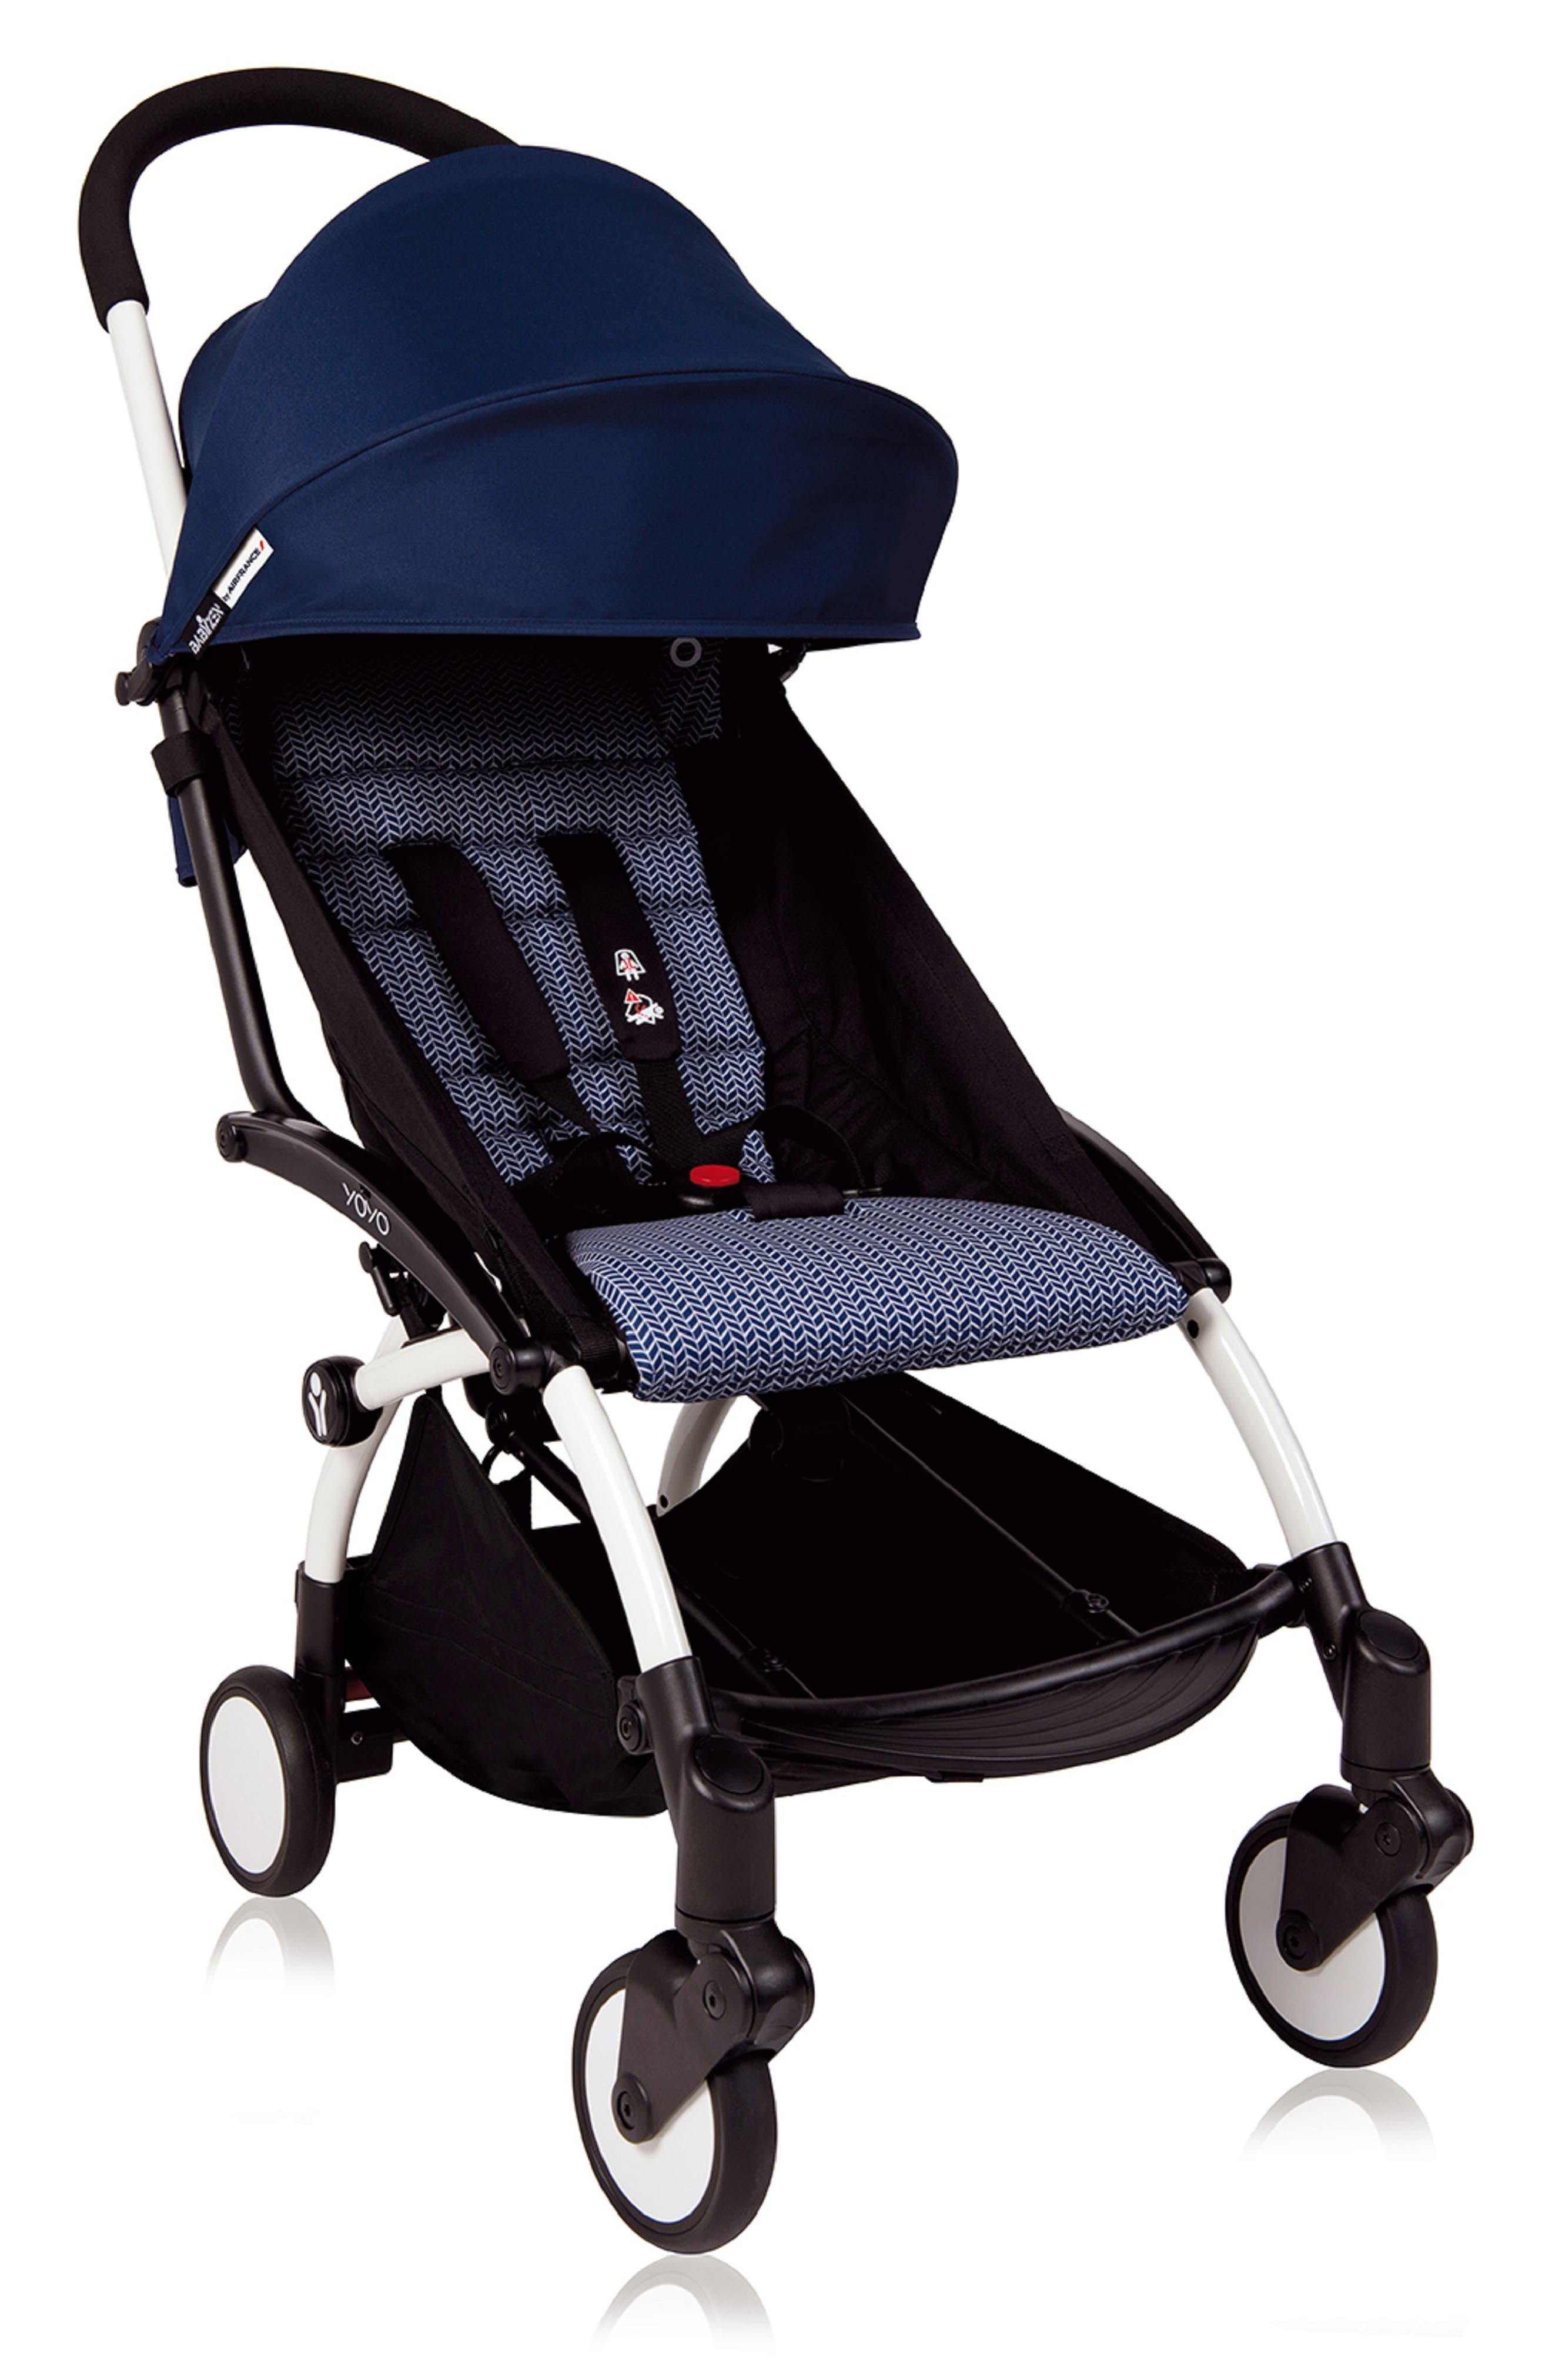 YOYO+ Stroller Frame,                             Main thumbnail 1, color,                             White/ Air France Navy